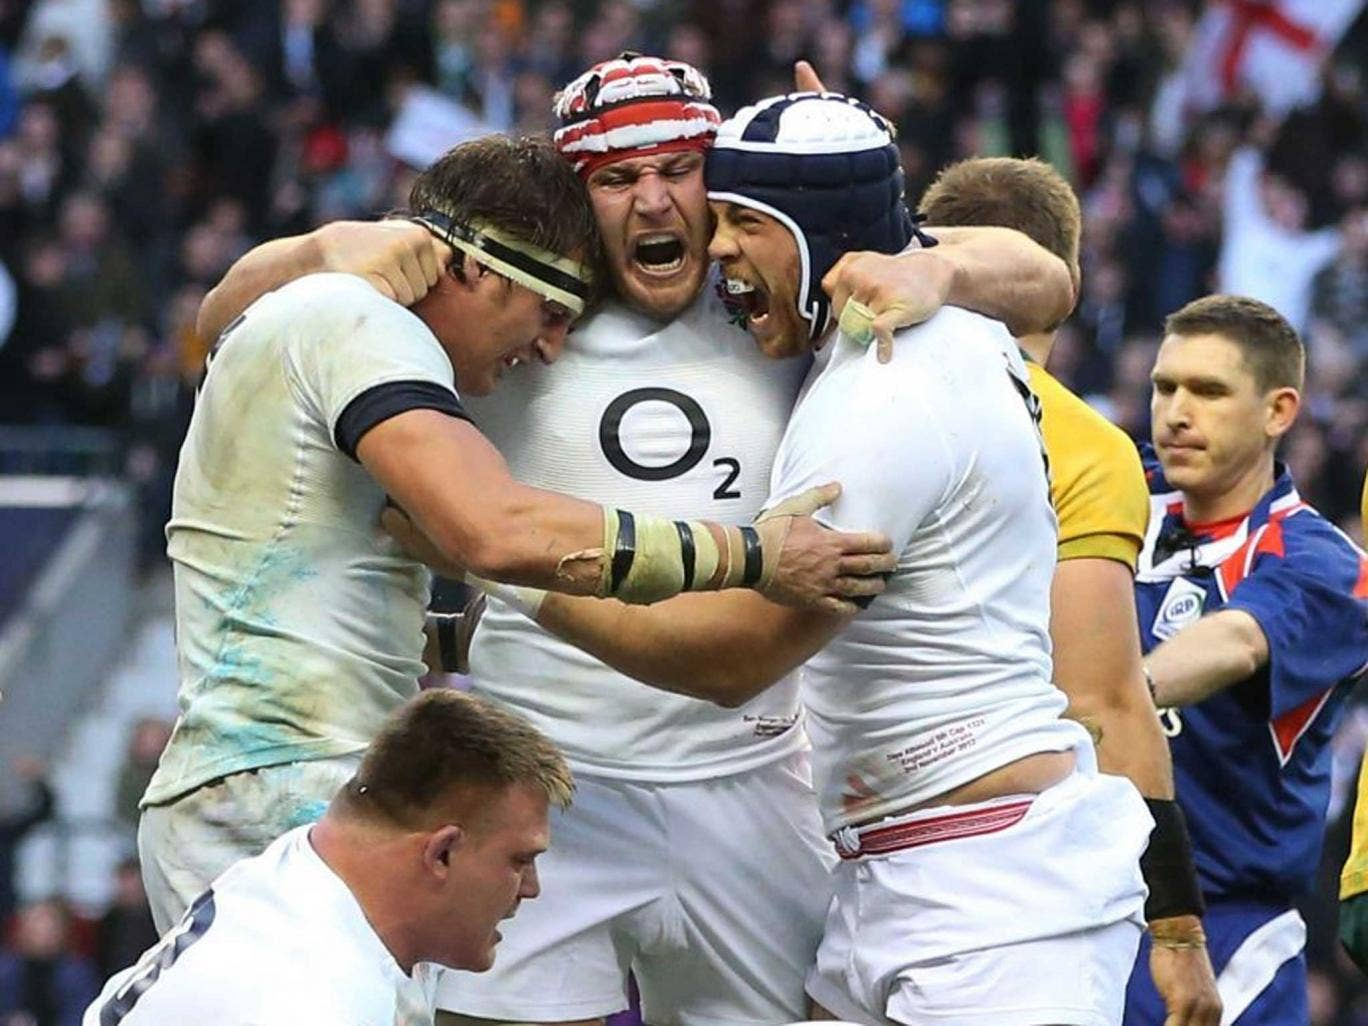 The England team celebrating after defeating Australia